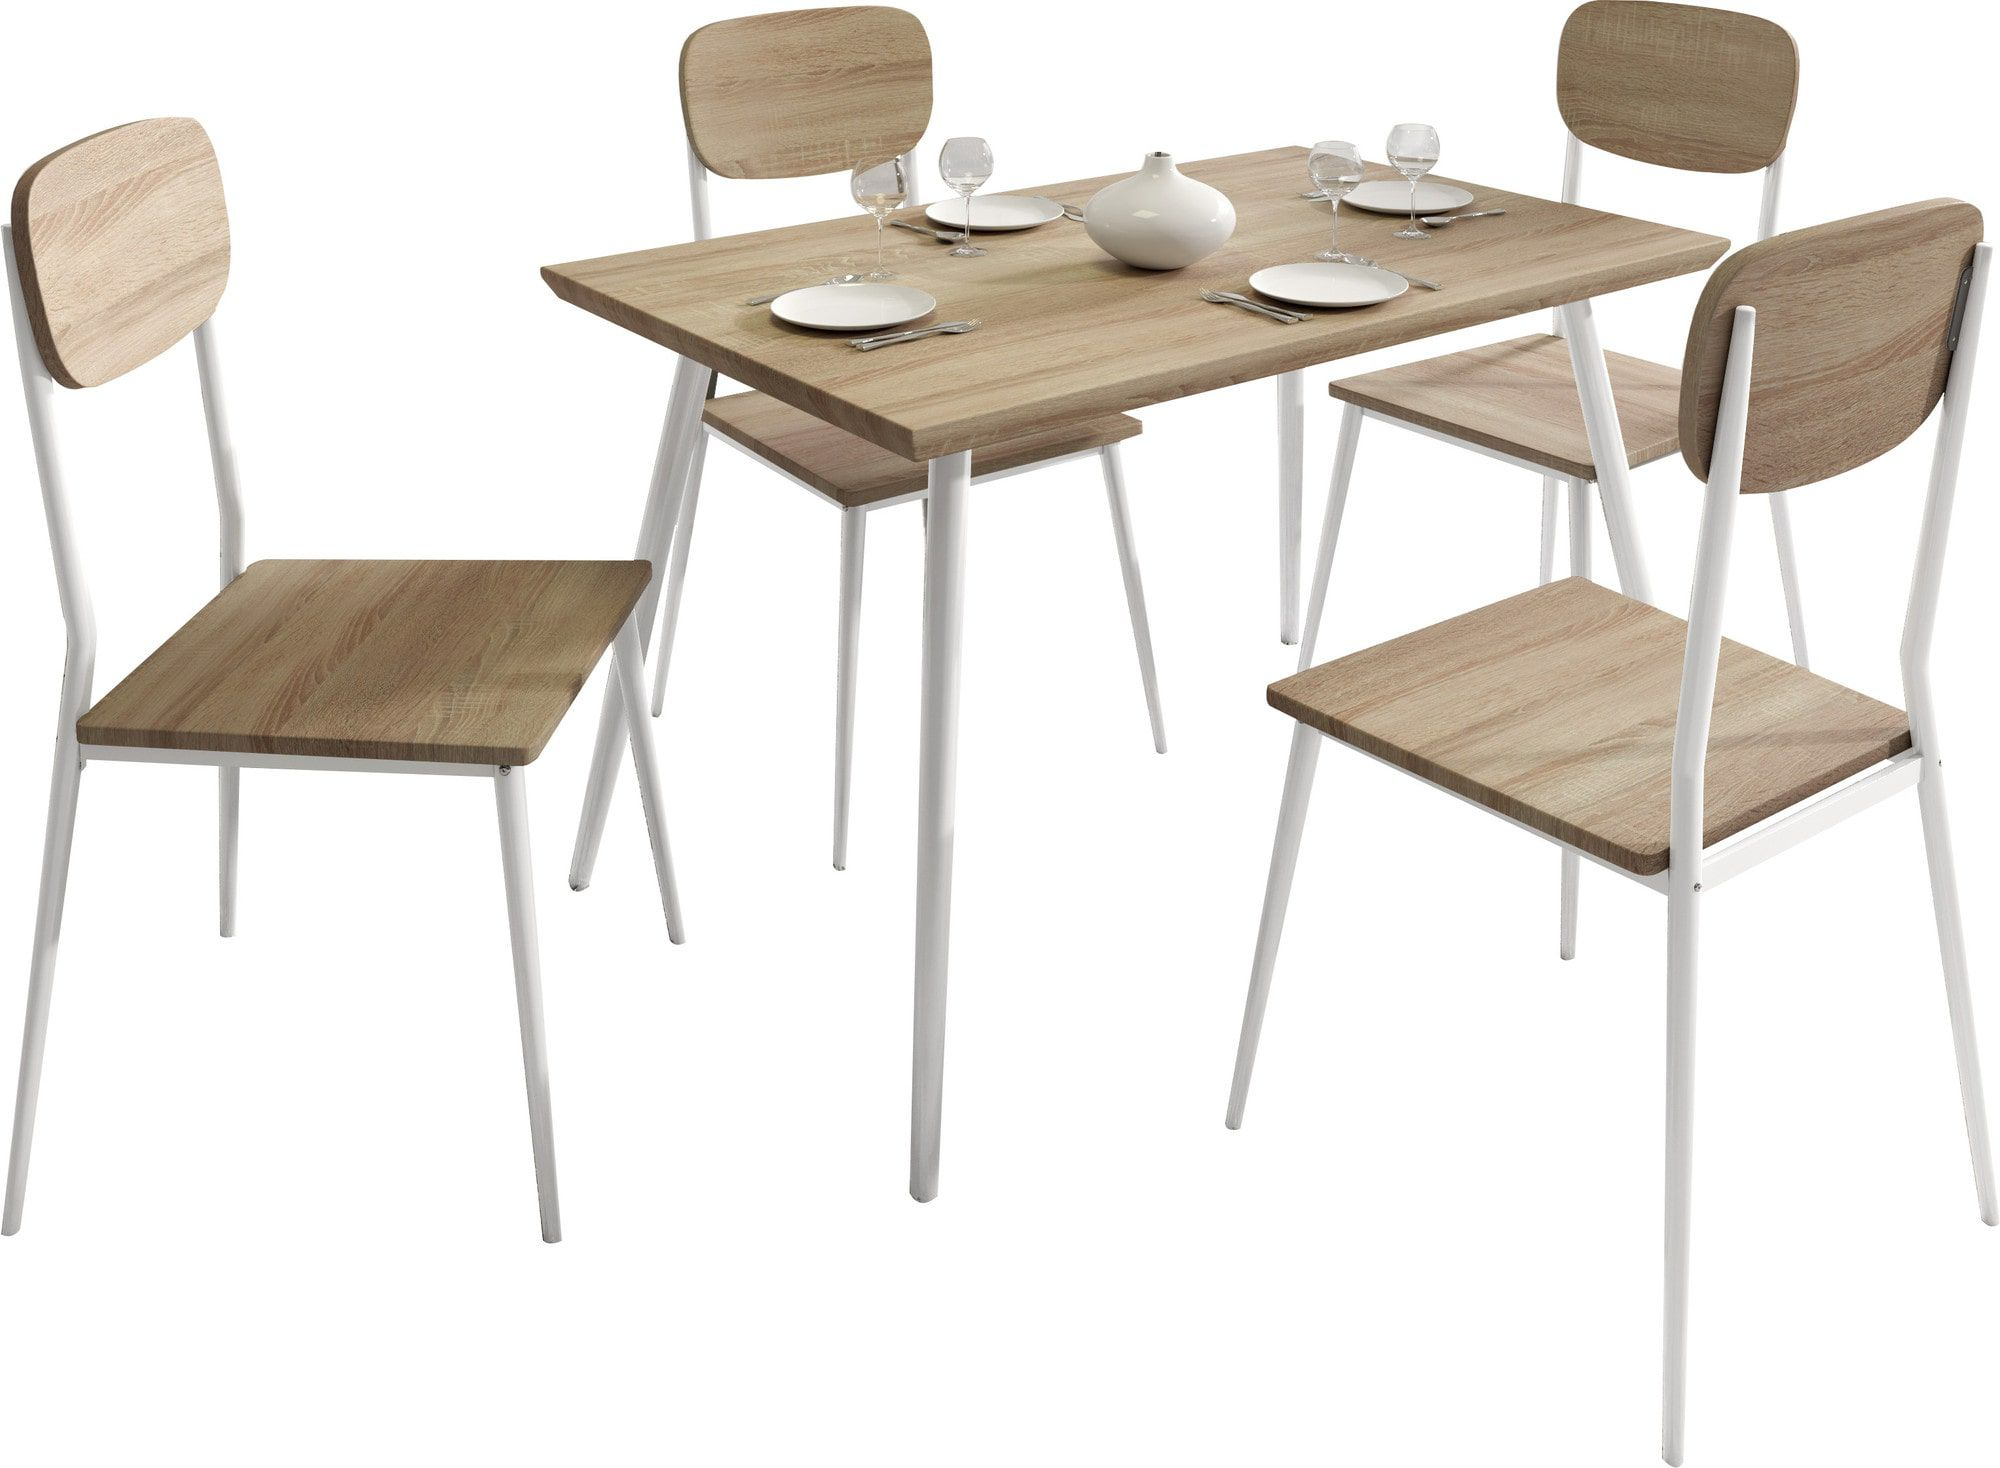 Comment assortir l ensemble table et chaise de sa salle - Ensemble table et chaise salle a manger ...